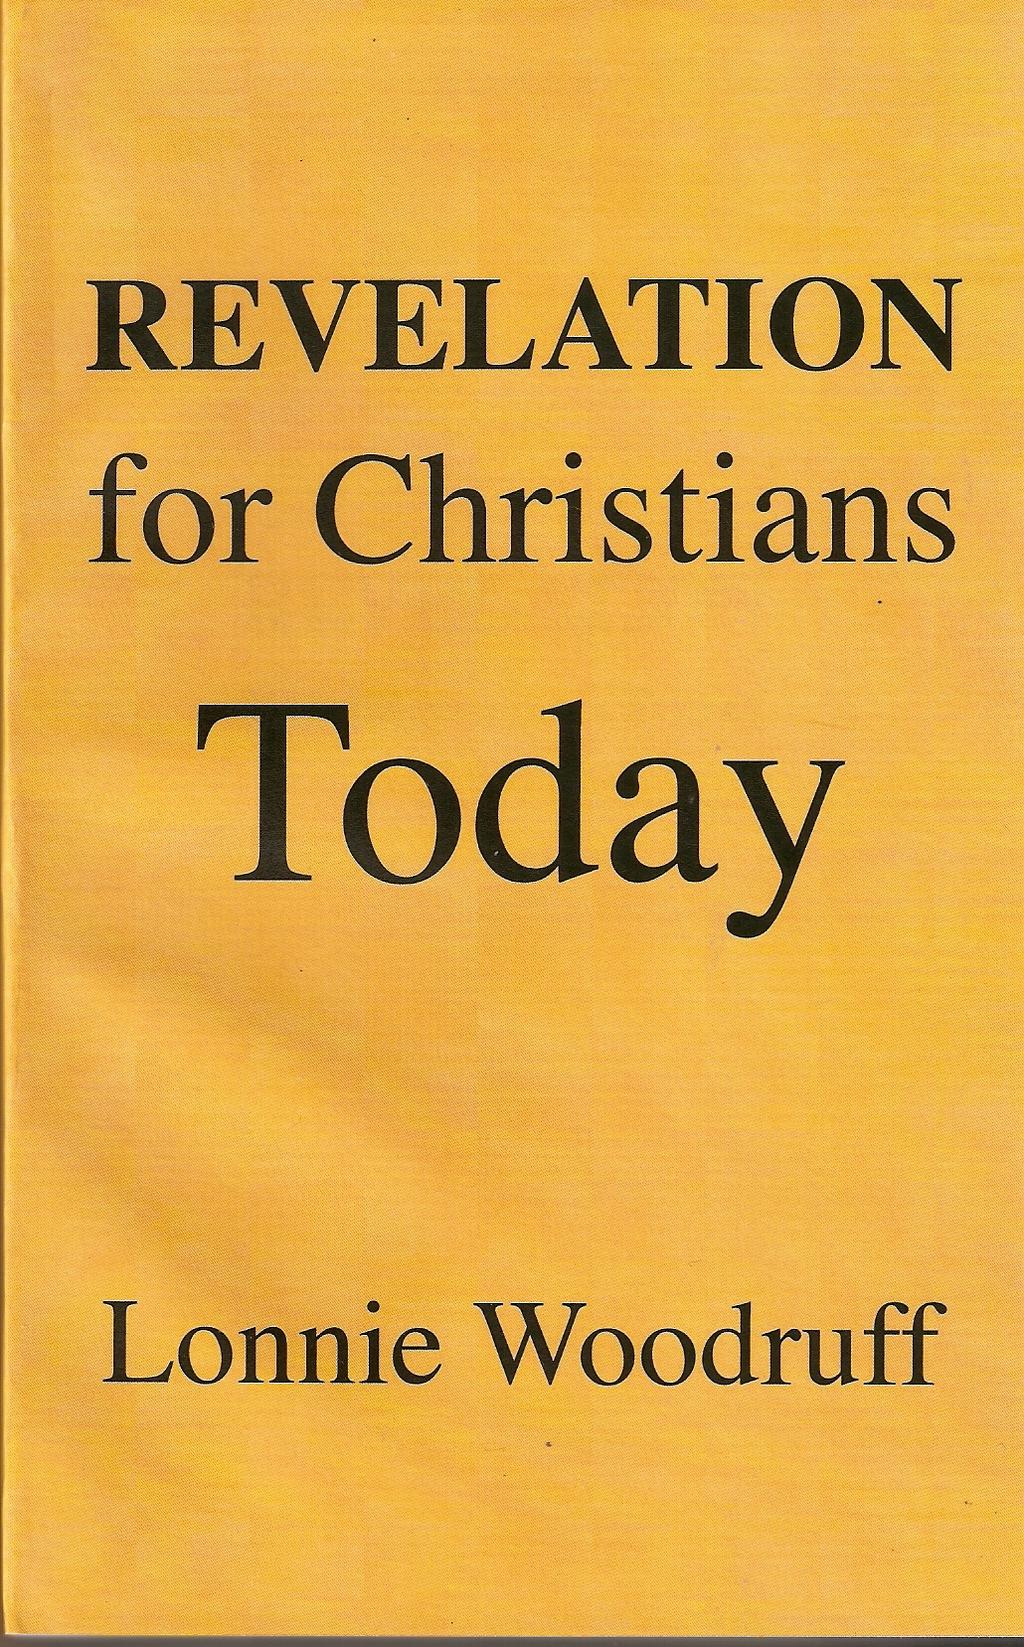 Books by Lonnie Woodruff Revelation For Christians Today Eden To Eden We must begin to realize that Revelation is a prophecy about the church. It is not about the destruction of Jerusalem or Rome.